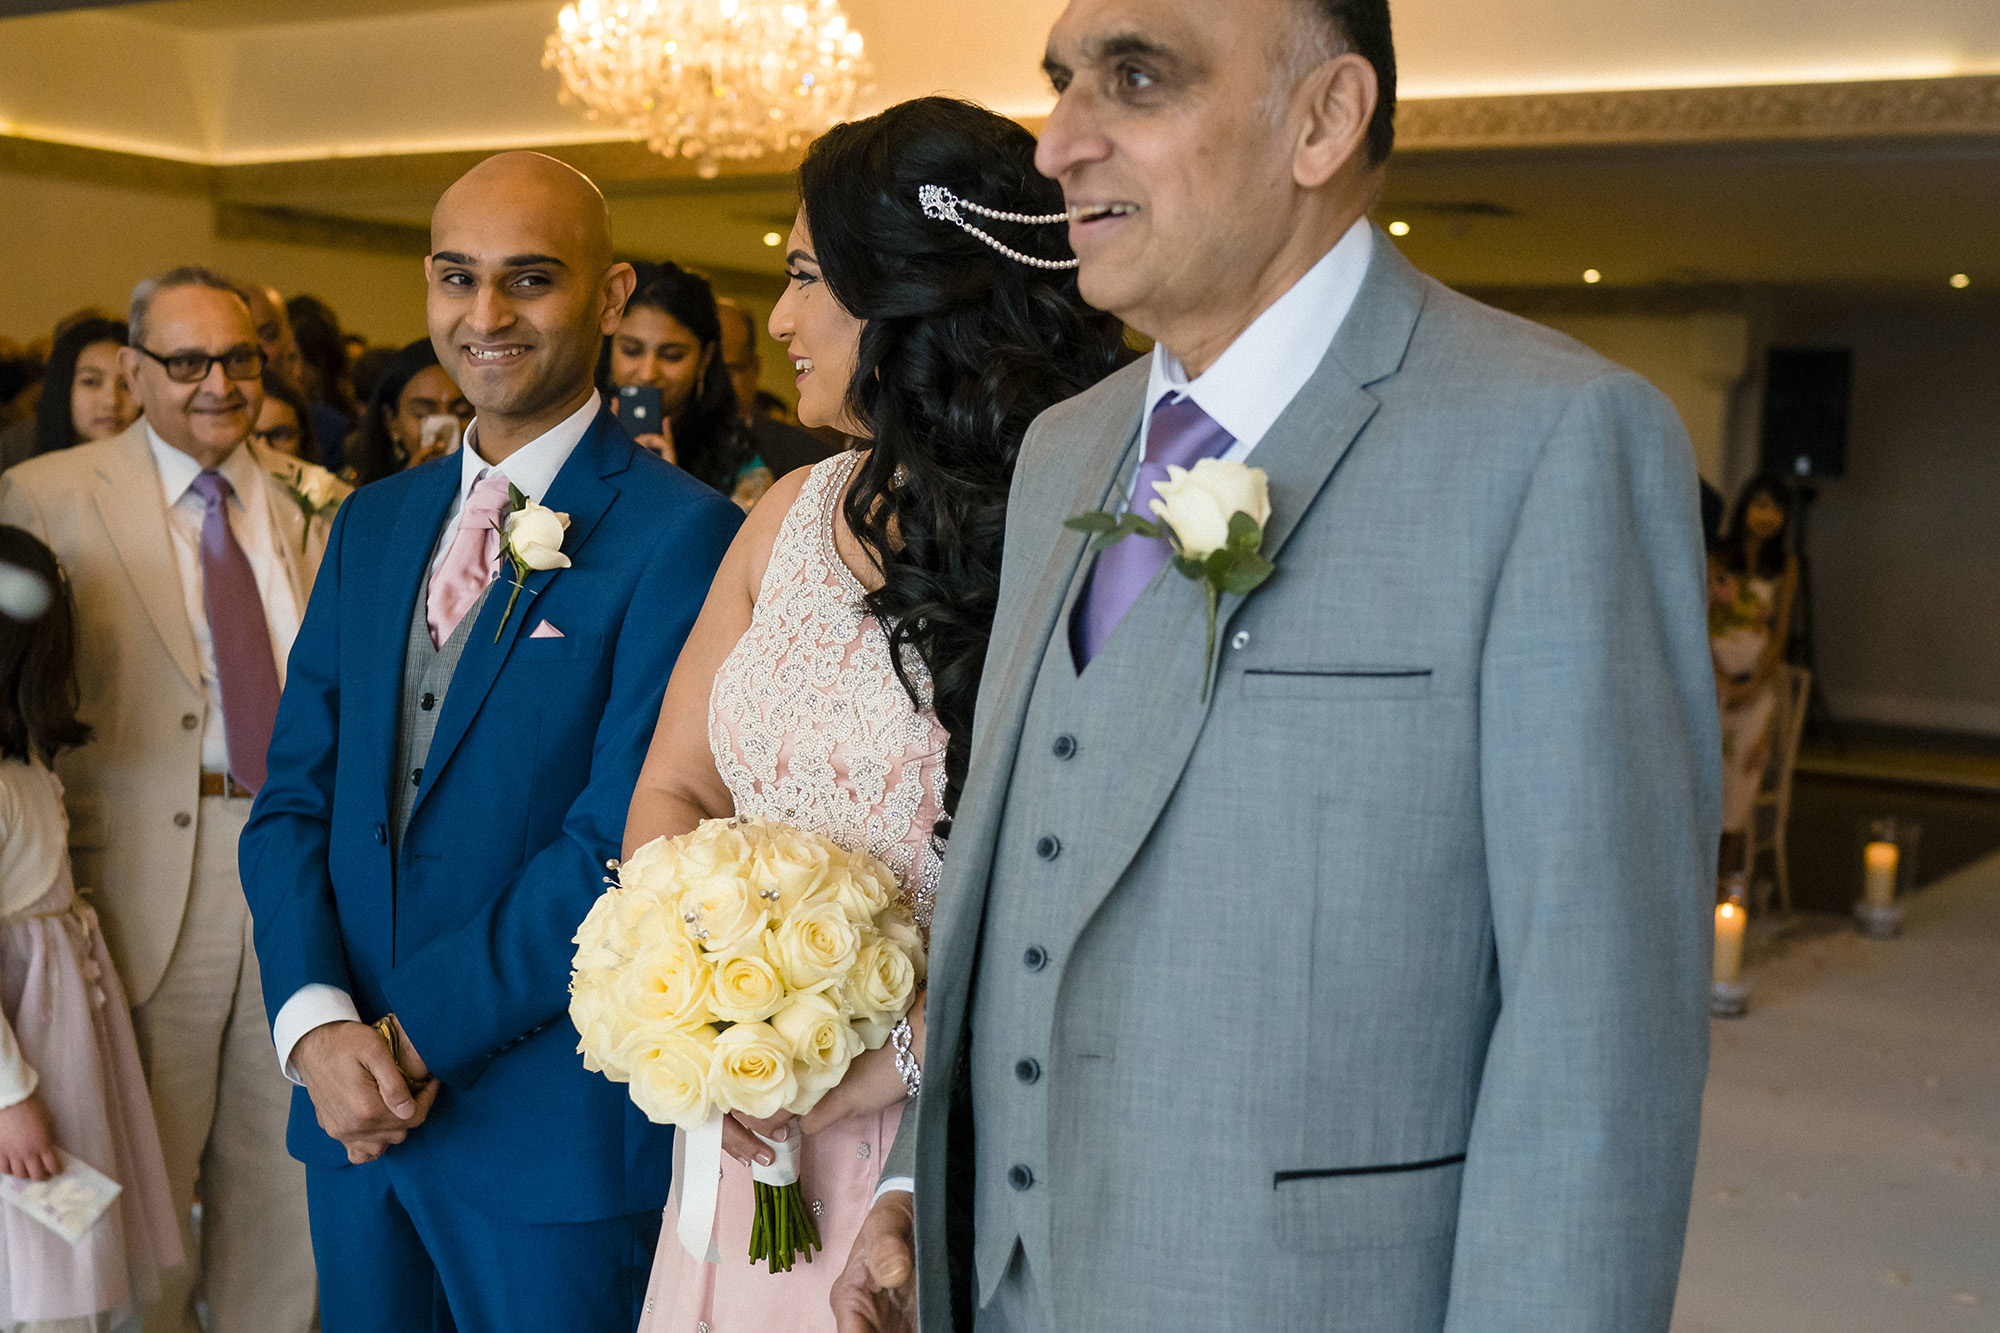 bride entrance with her father